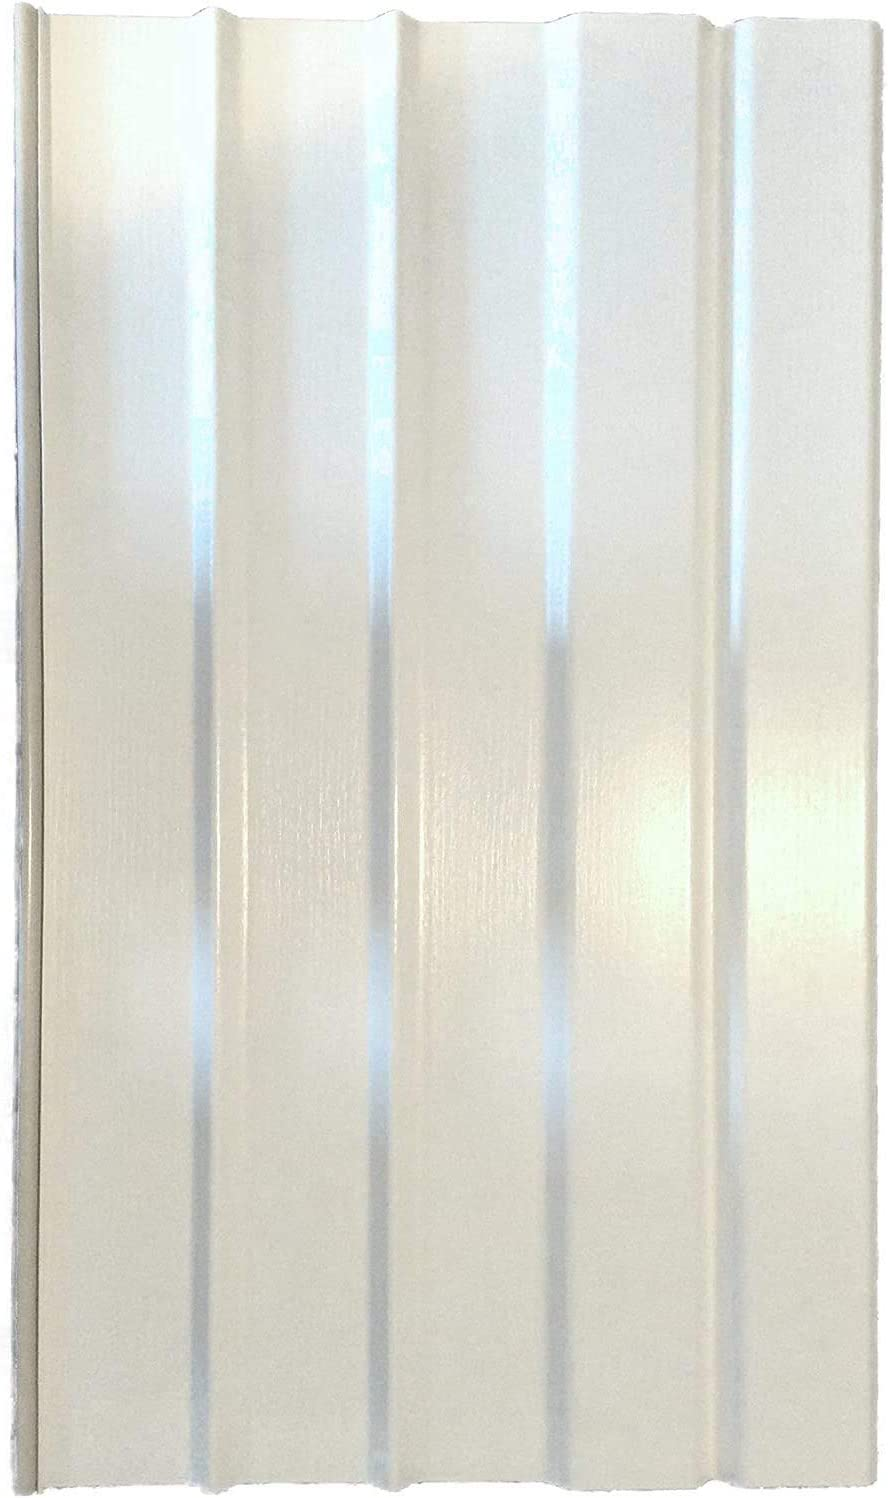 "Lifestyle Mobile Home Vinyl Skirting Box of 10 White Solid Panels 16"" Wide X 28"" Tall. Premium 40 Mil Thickness"